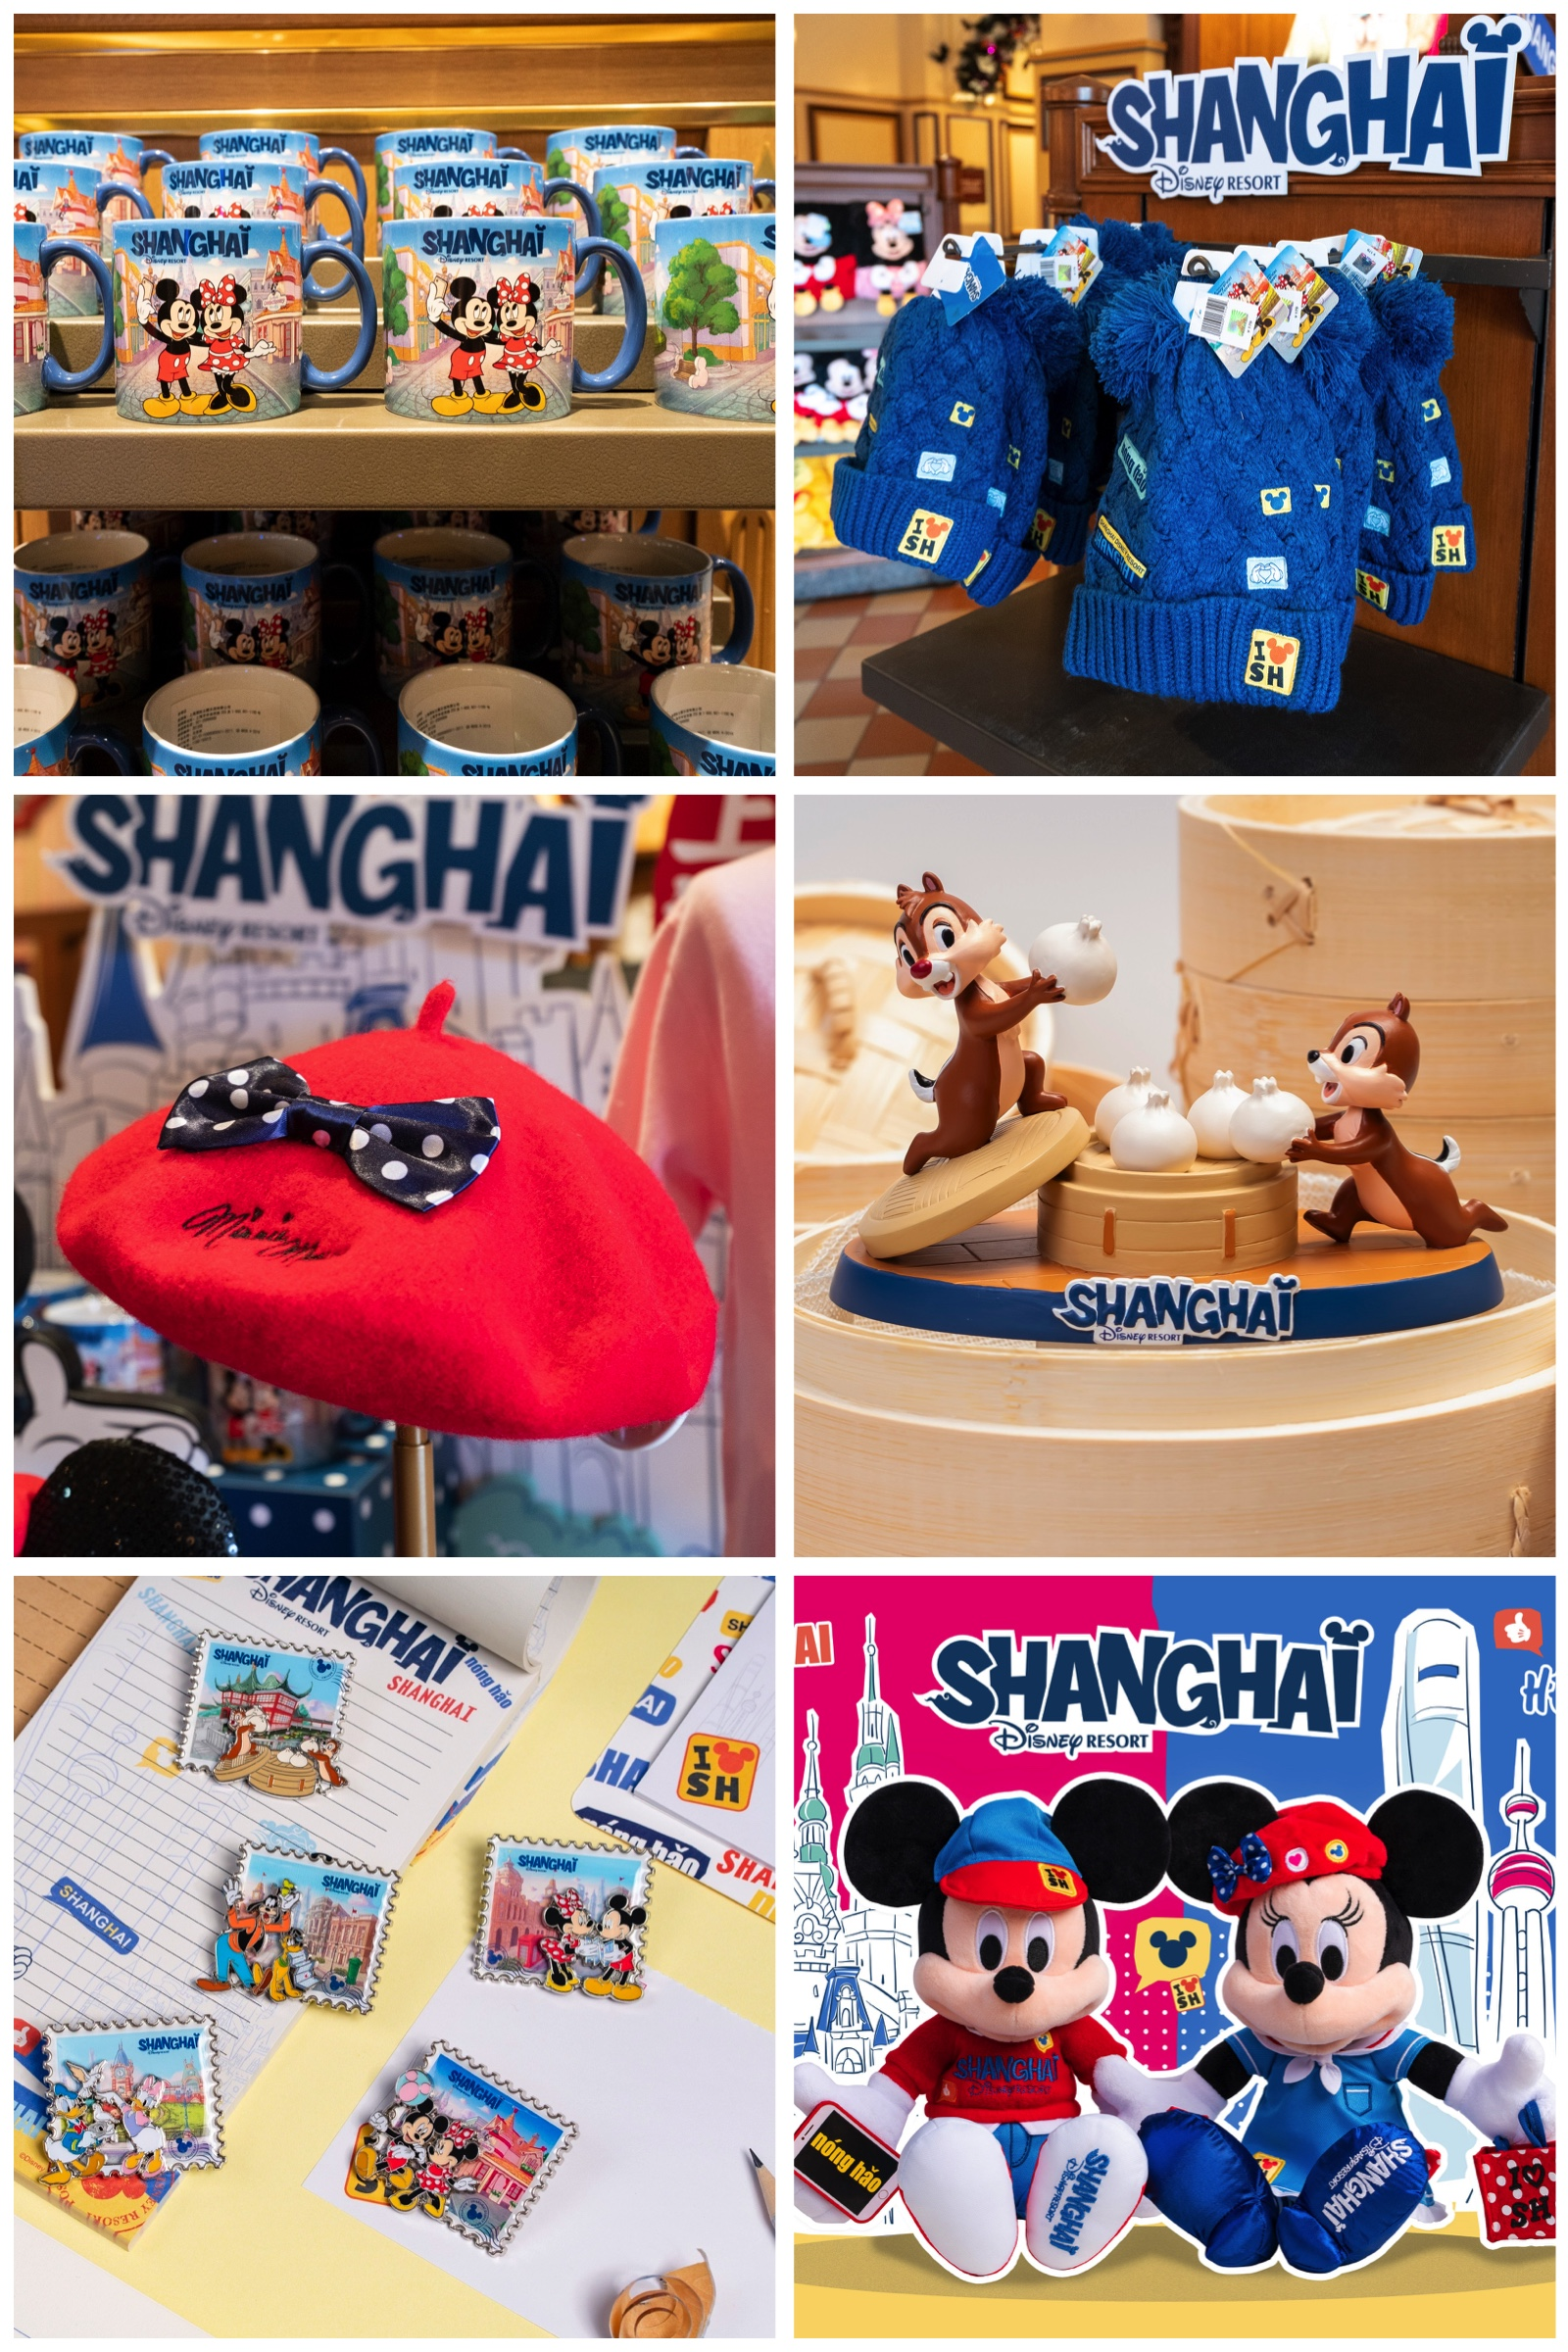 Exclusive 'Mickey in Shanghai' Collection Now at Shanghai Disney Resort